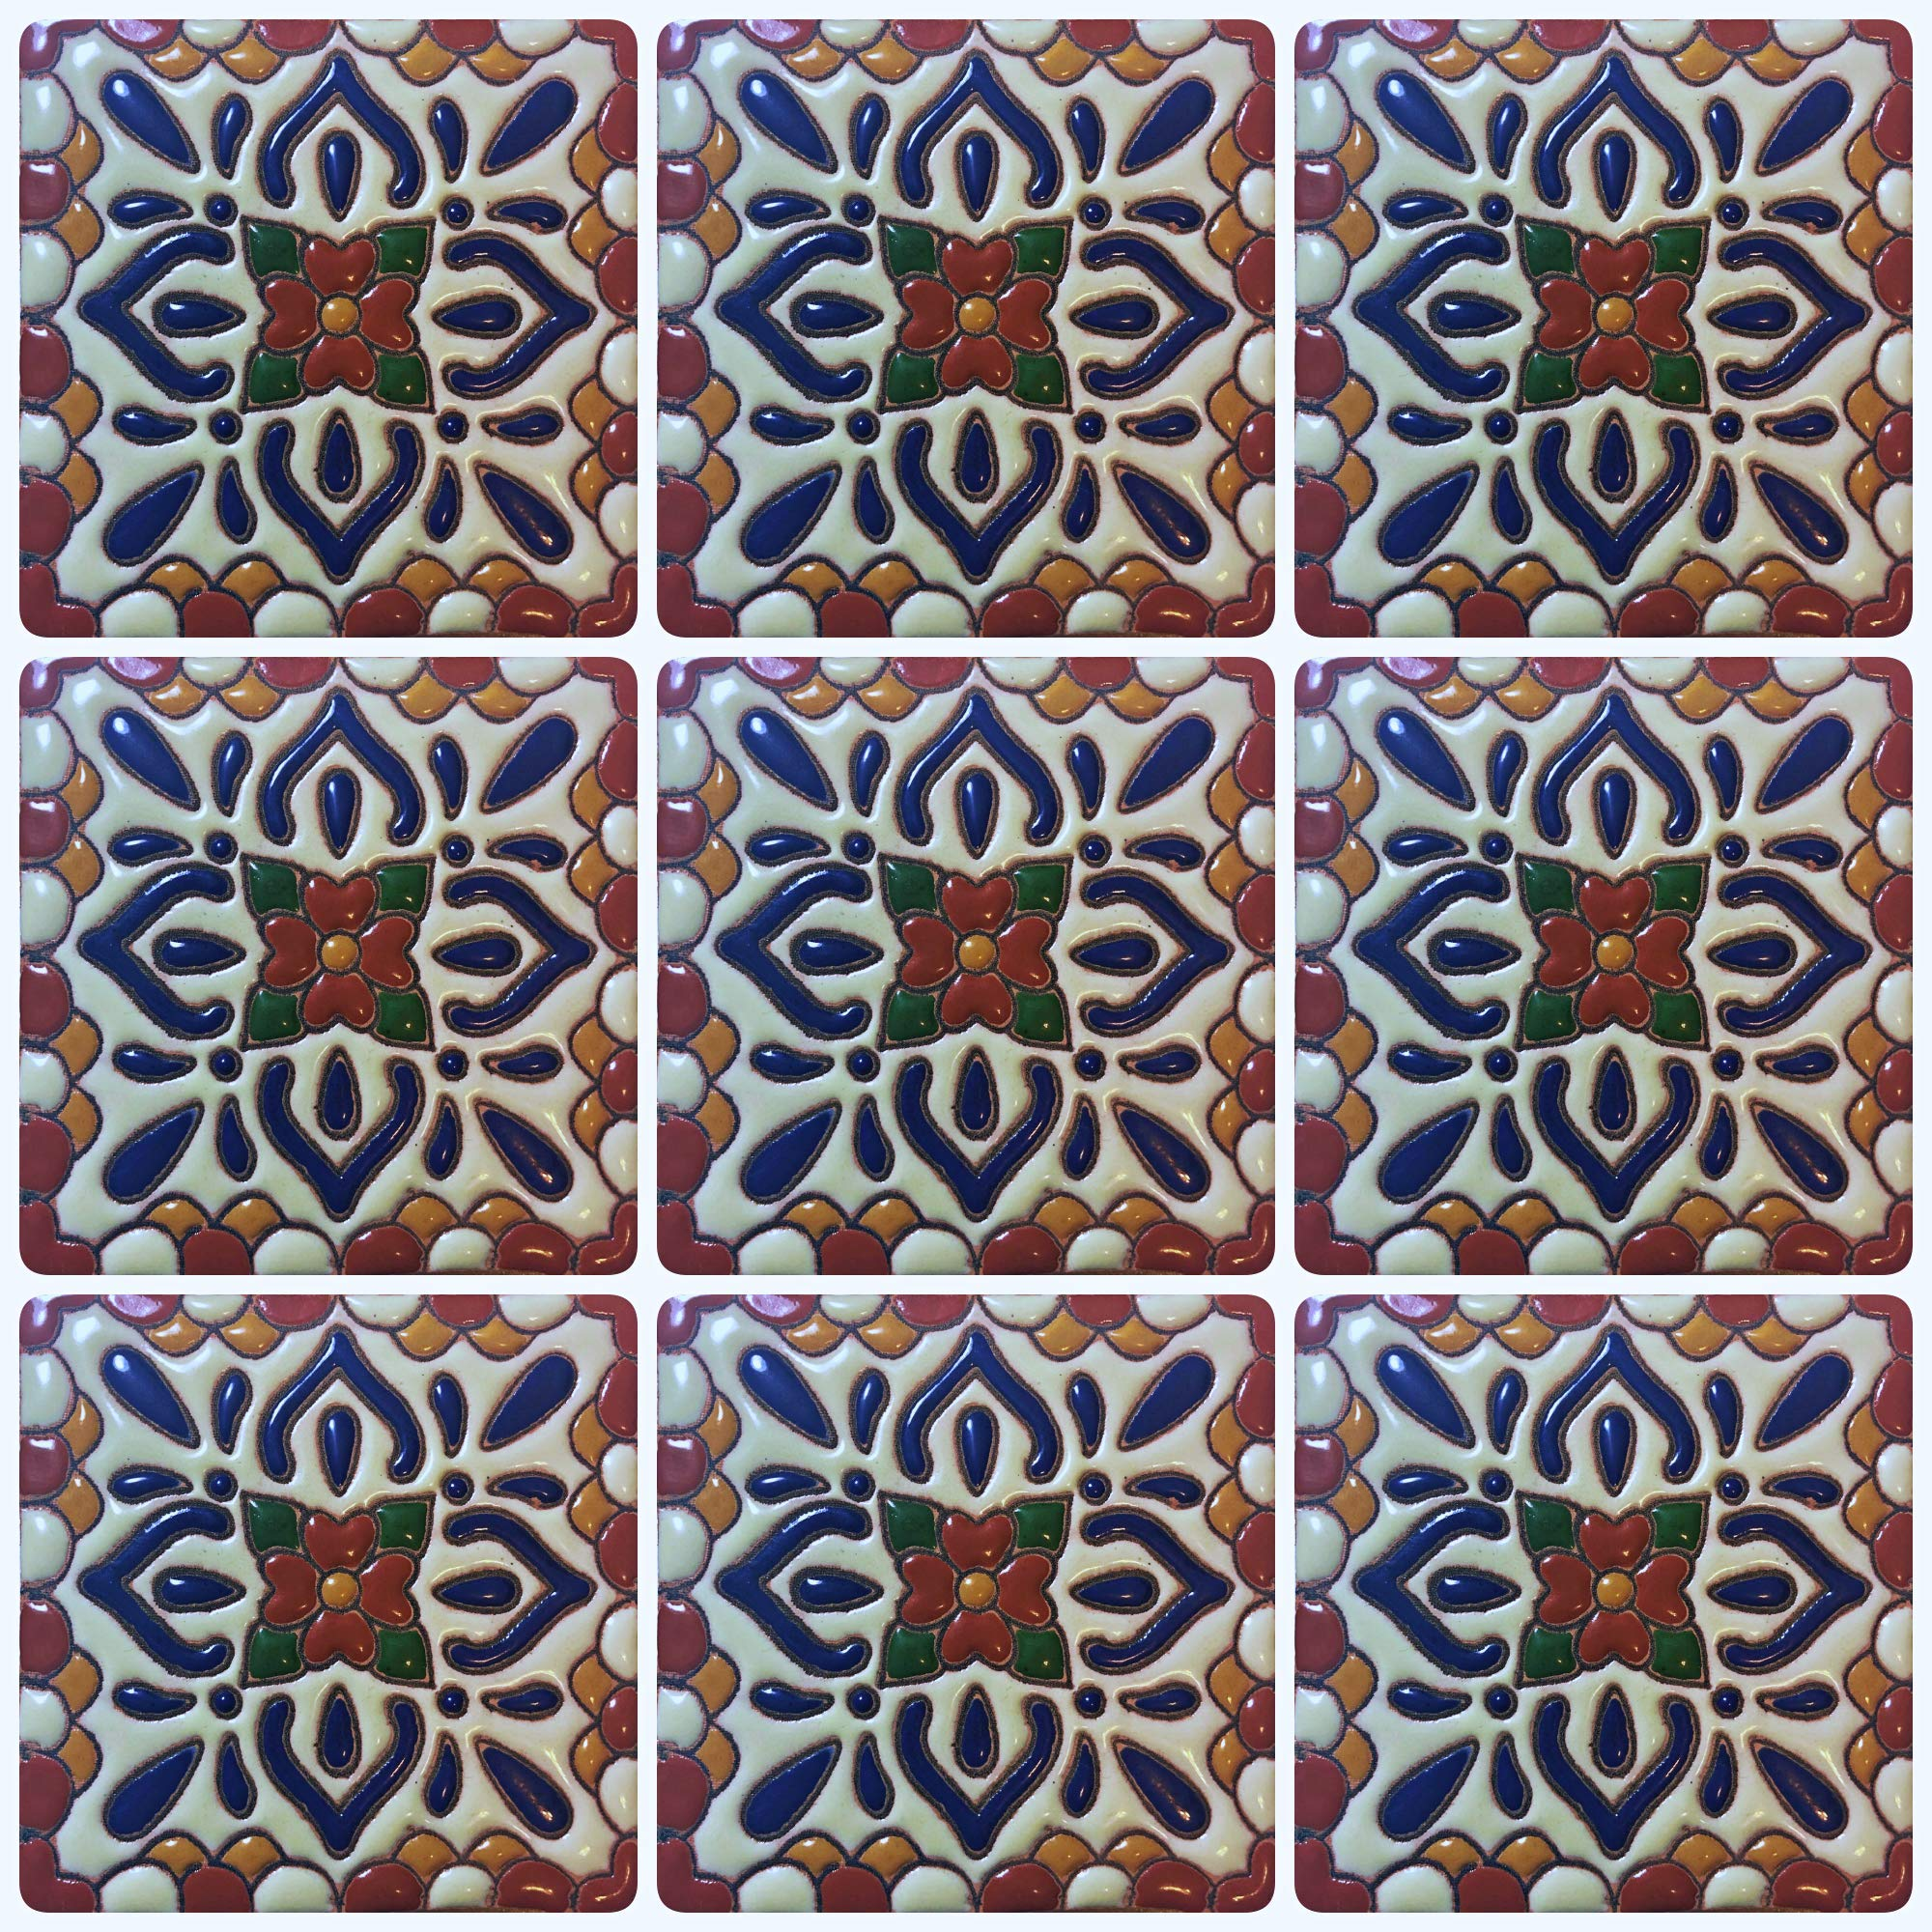 Ceramic High Relief Talavera Mexican Tile 4x4'', 9 Pieces (NOT Stickers) A1 Export Quality! - CR